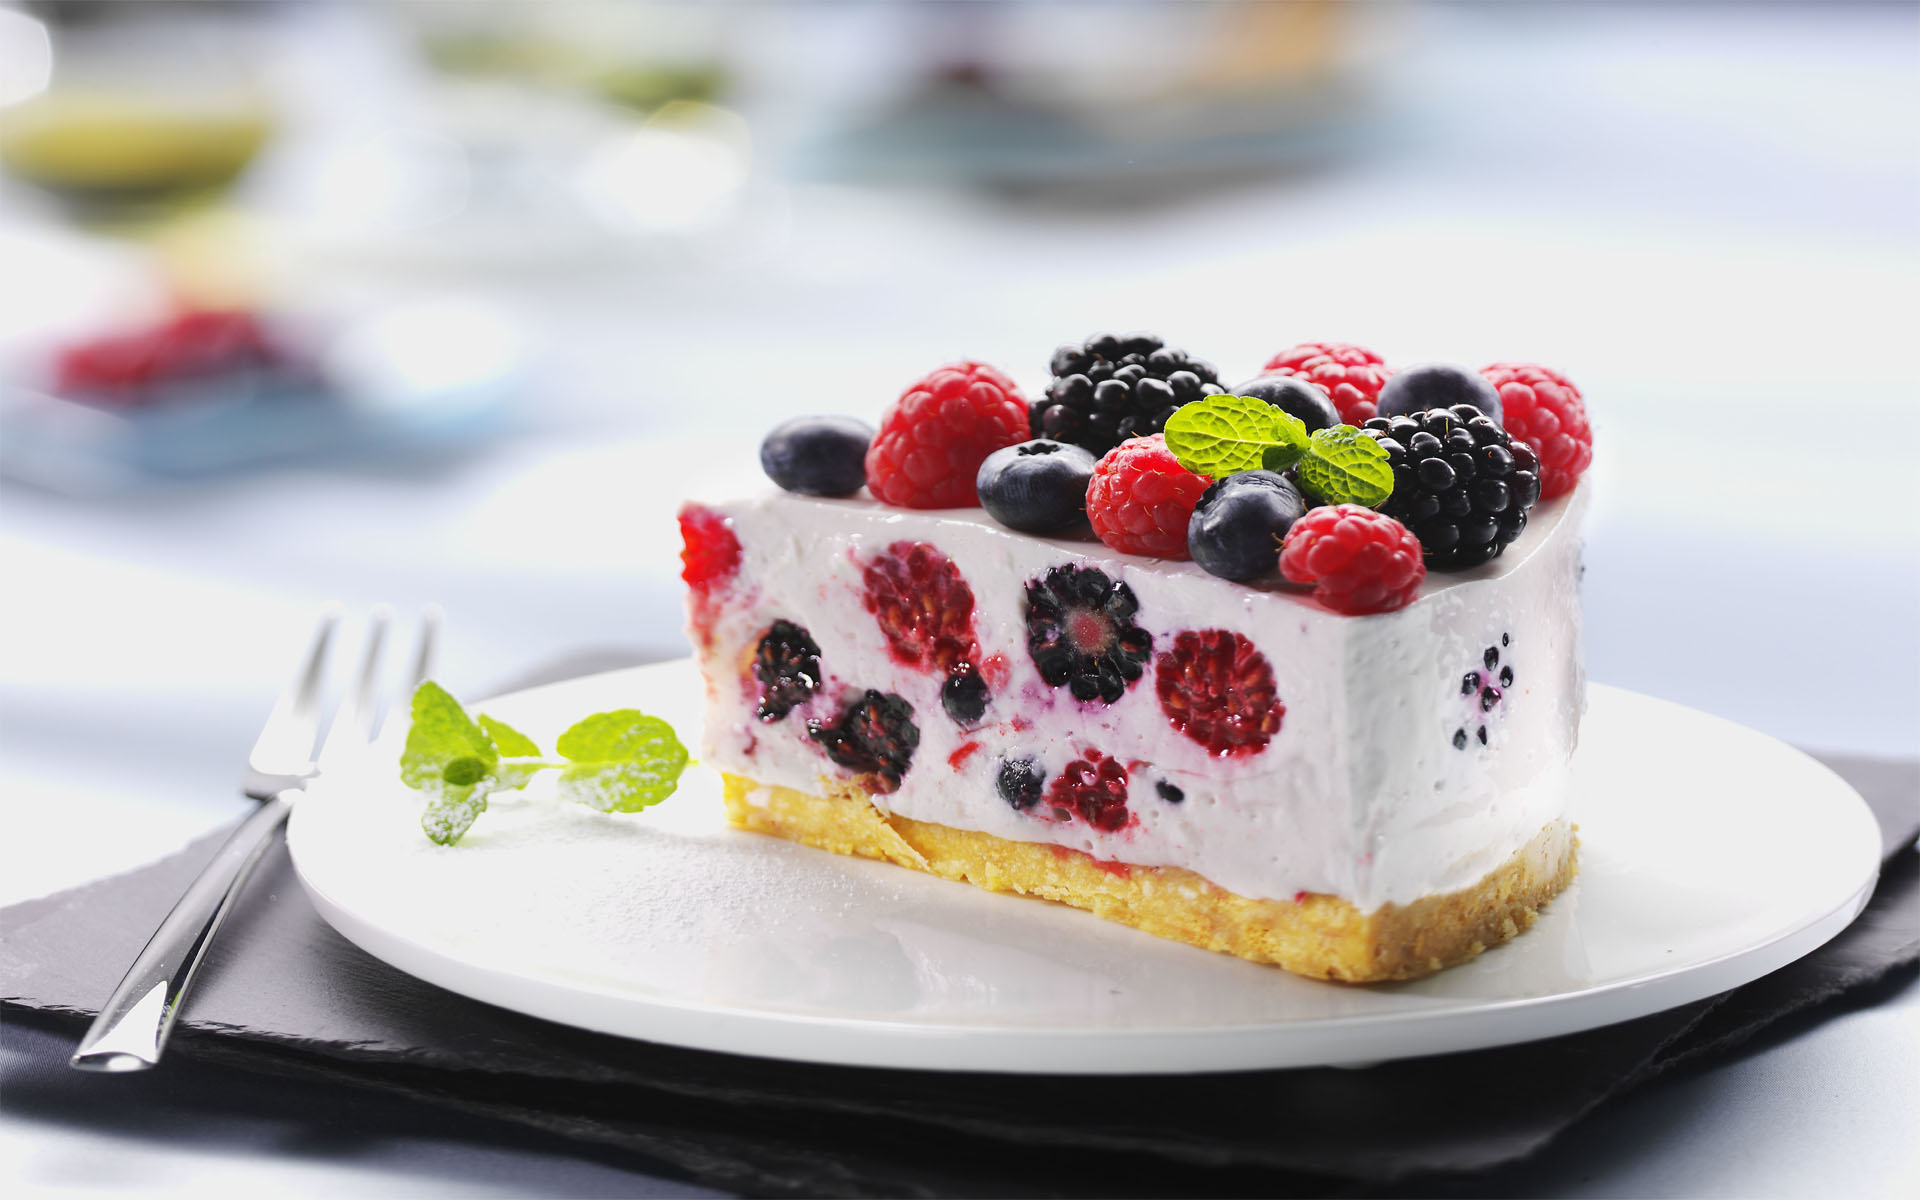 Download Latest Cake Images : Cake full of fruits HD wallpaper HD Latest Wallpapers